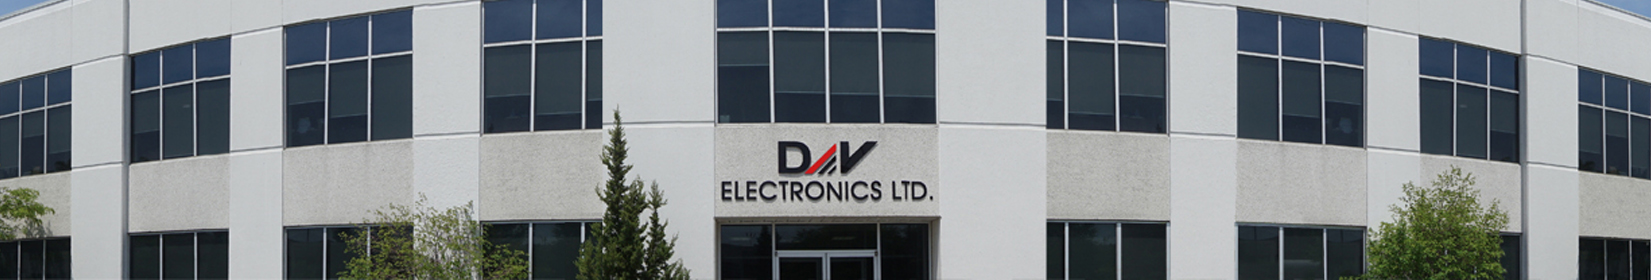 Photo of D&V's head office in Canada